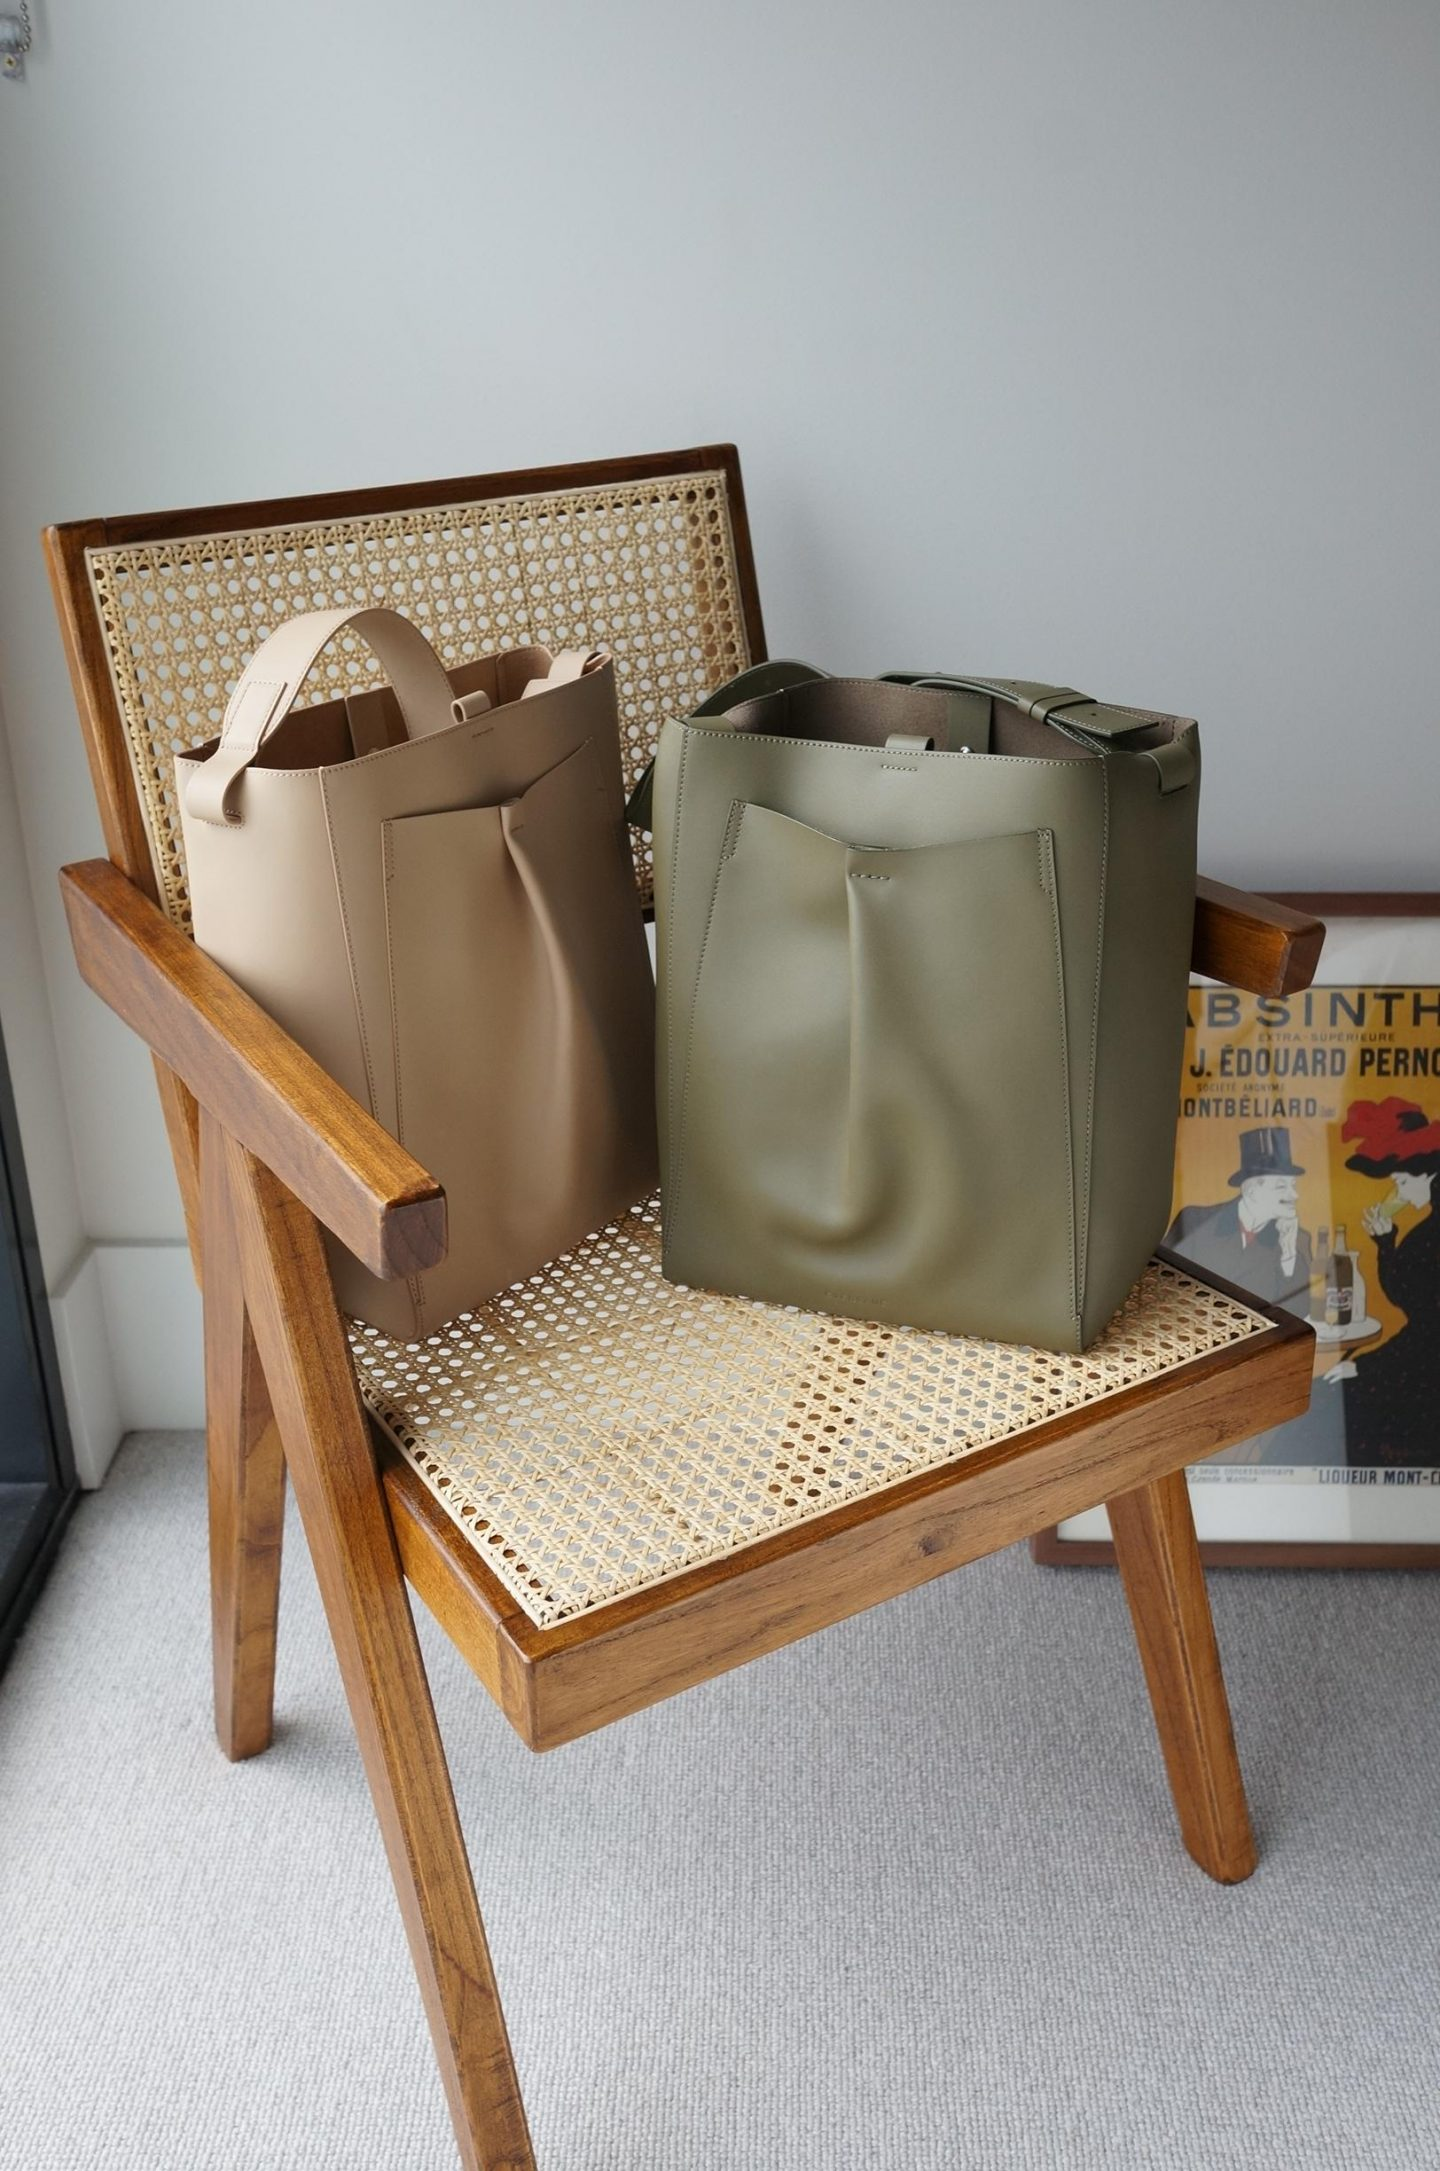 everlane studio bag in light taupe and olive in blog spot about everlane studio bag review